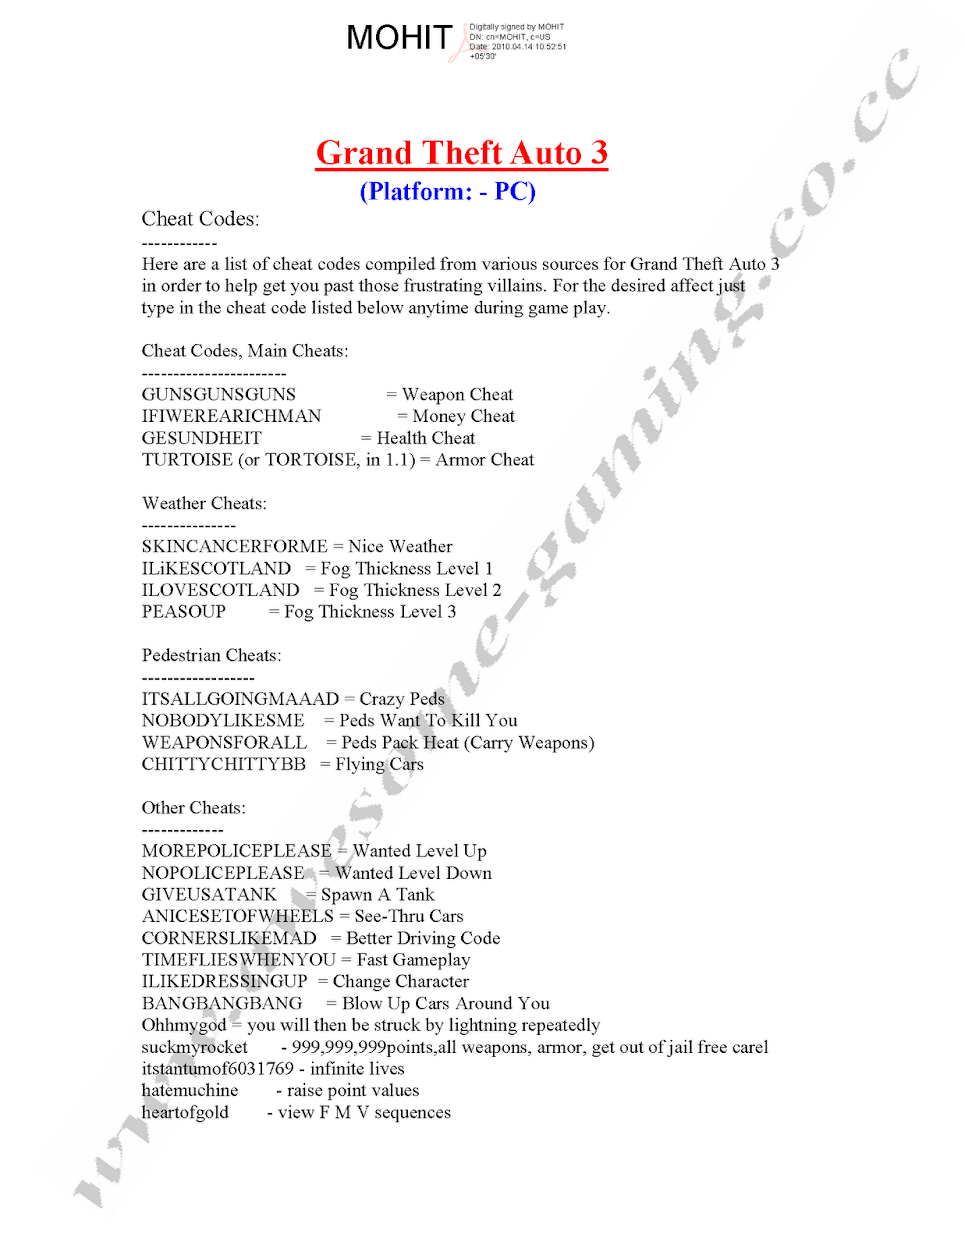 Cheats gta liberty city stories pc